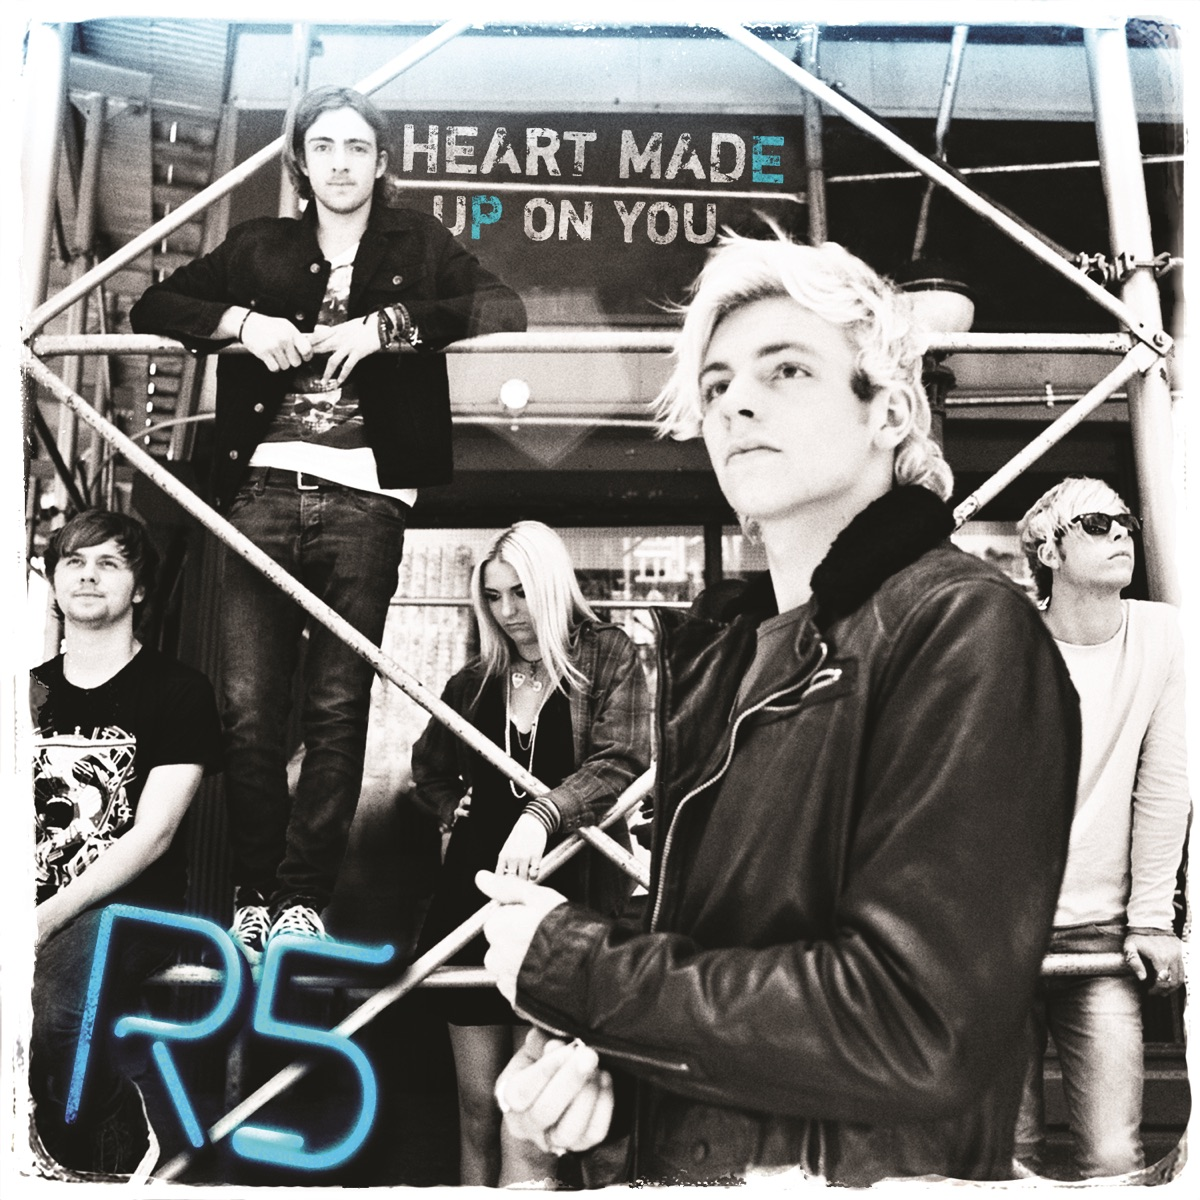 Heart Made Up On You - EP R5 CD cover